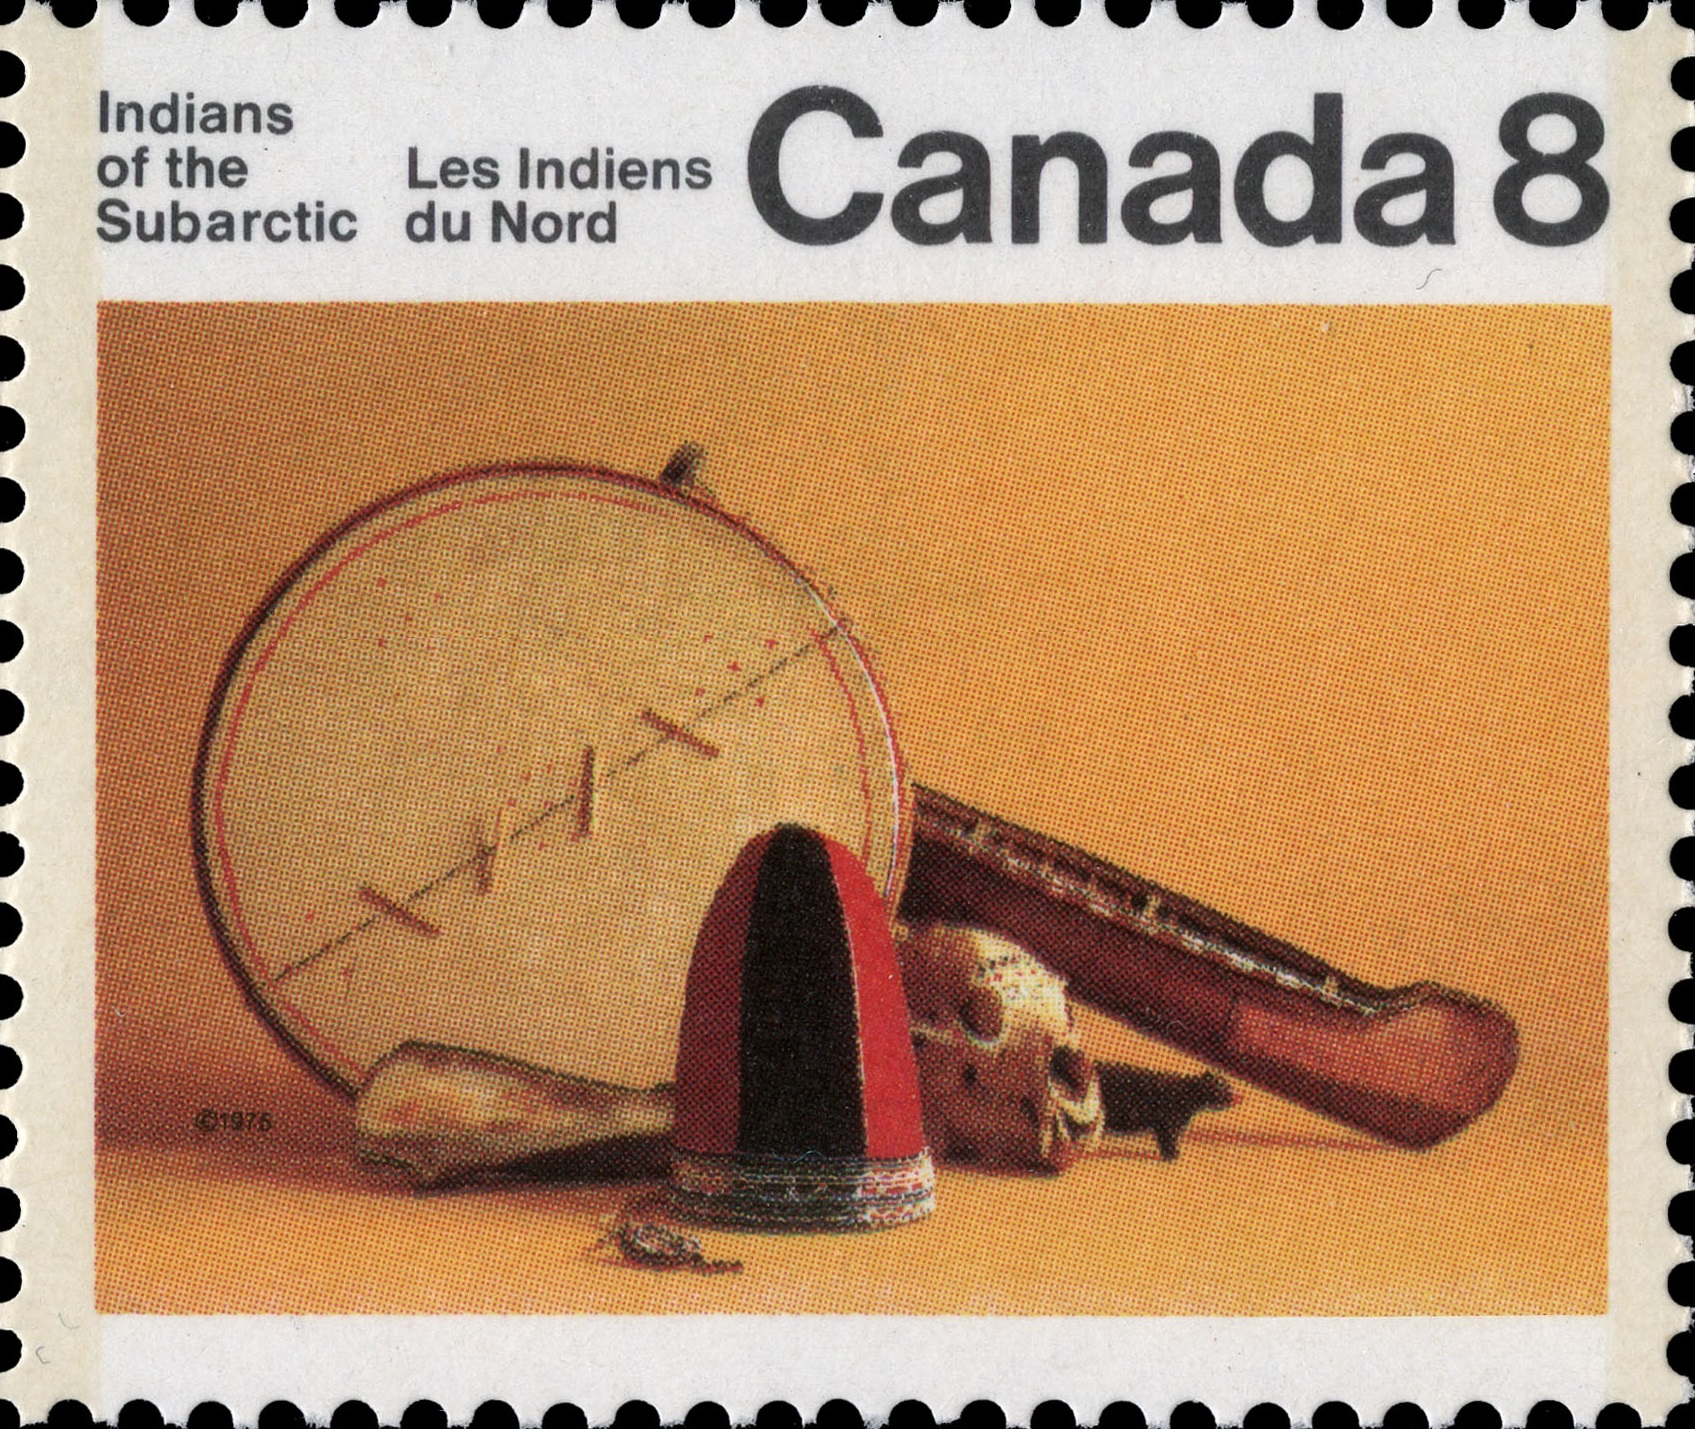 Artifacts Canada Postage Stamp | Indians of Canada, Indians of the Subarctic